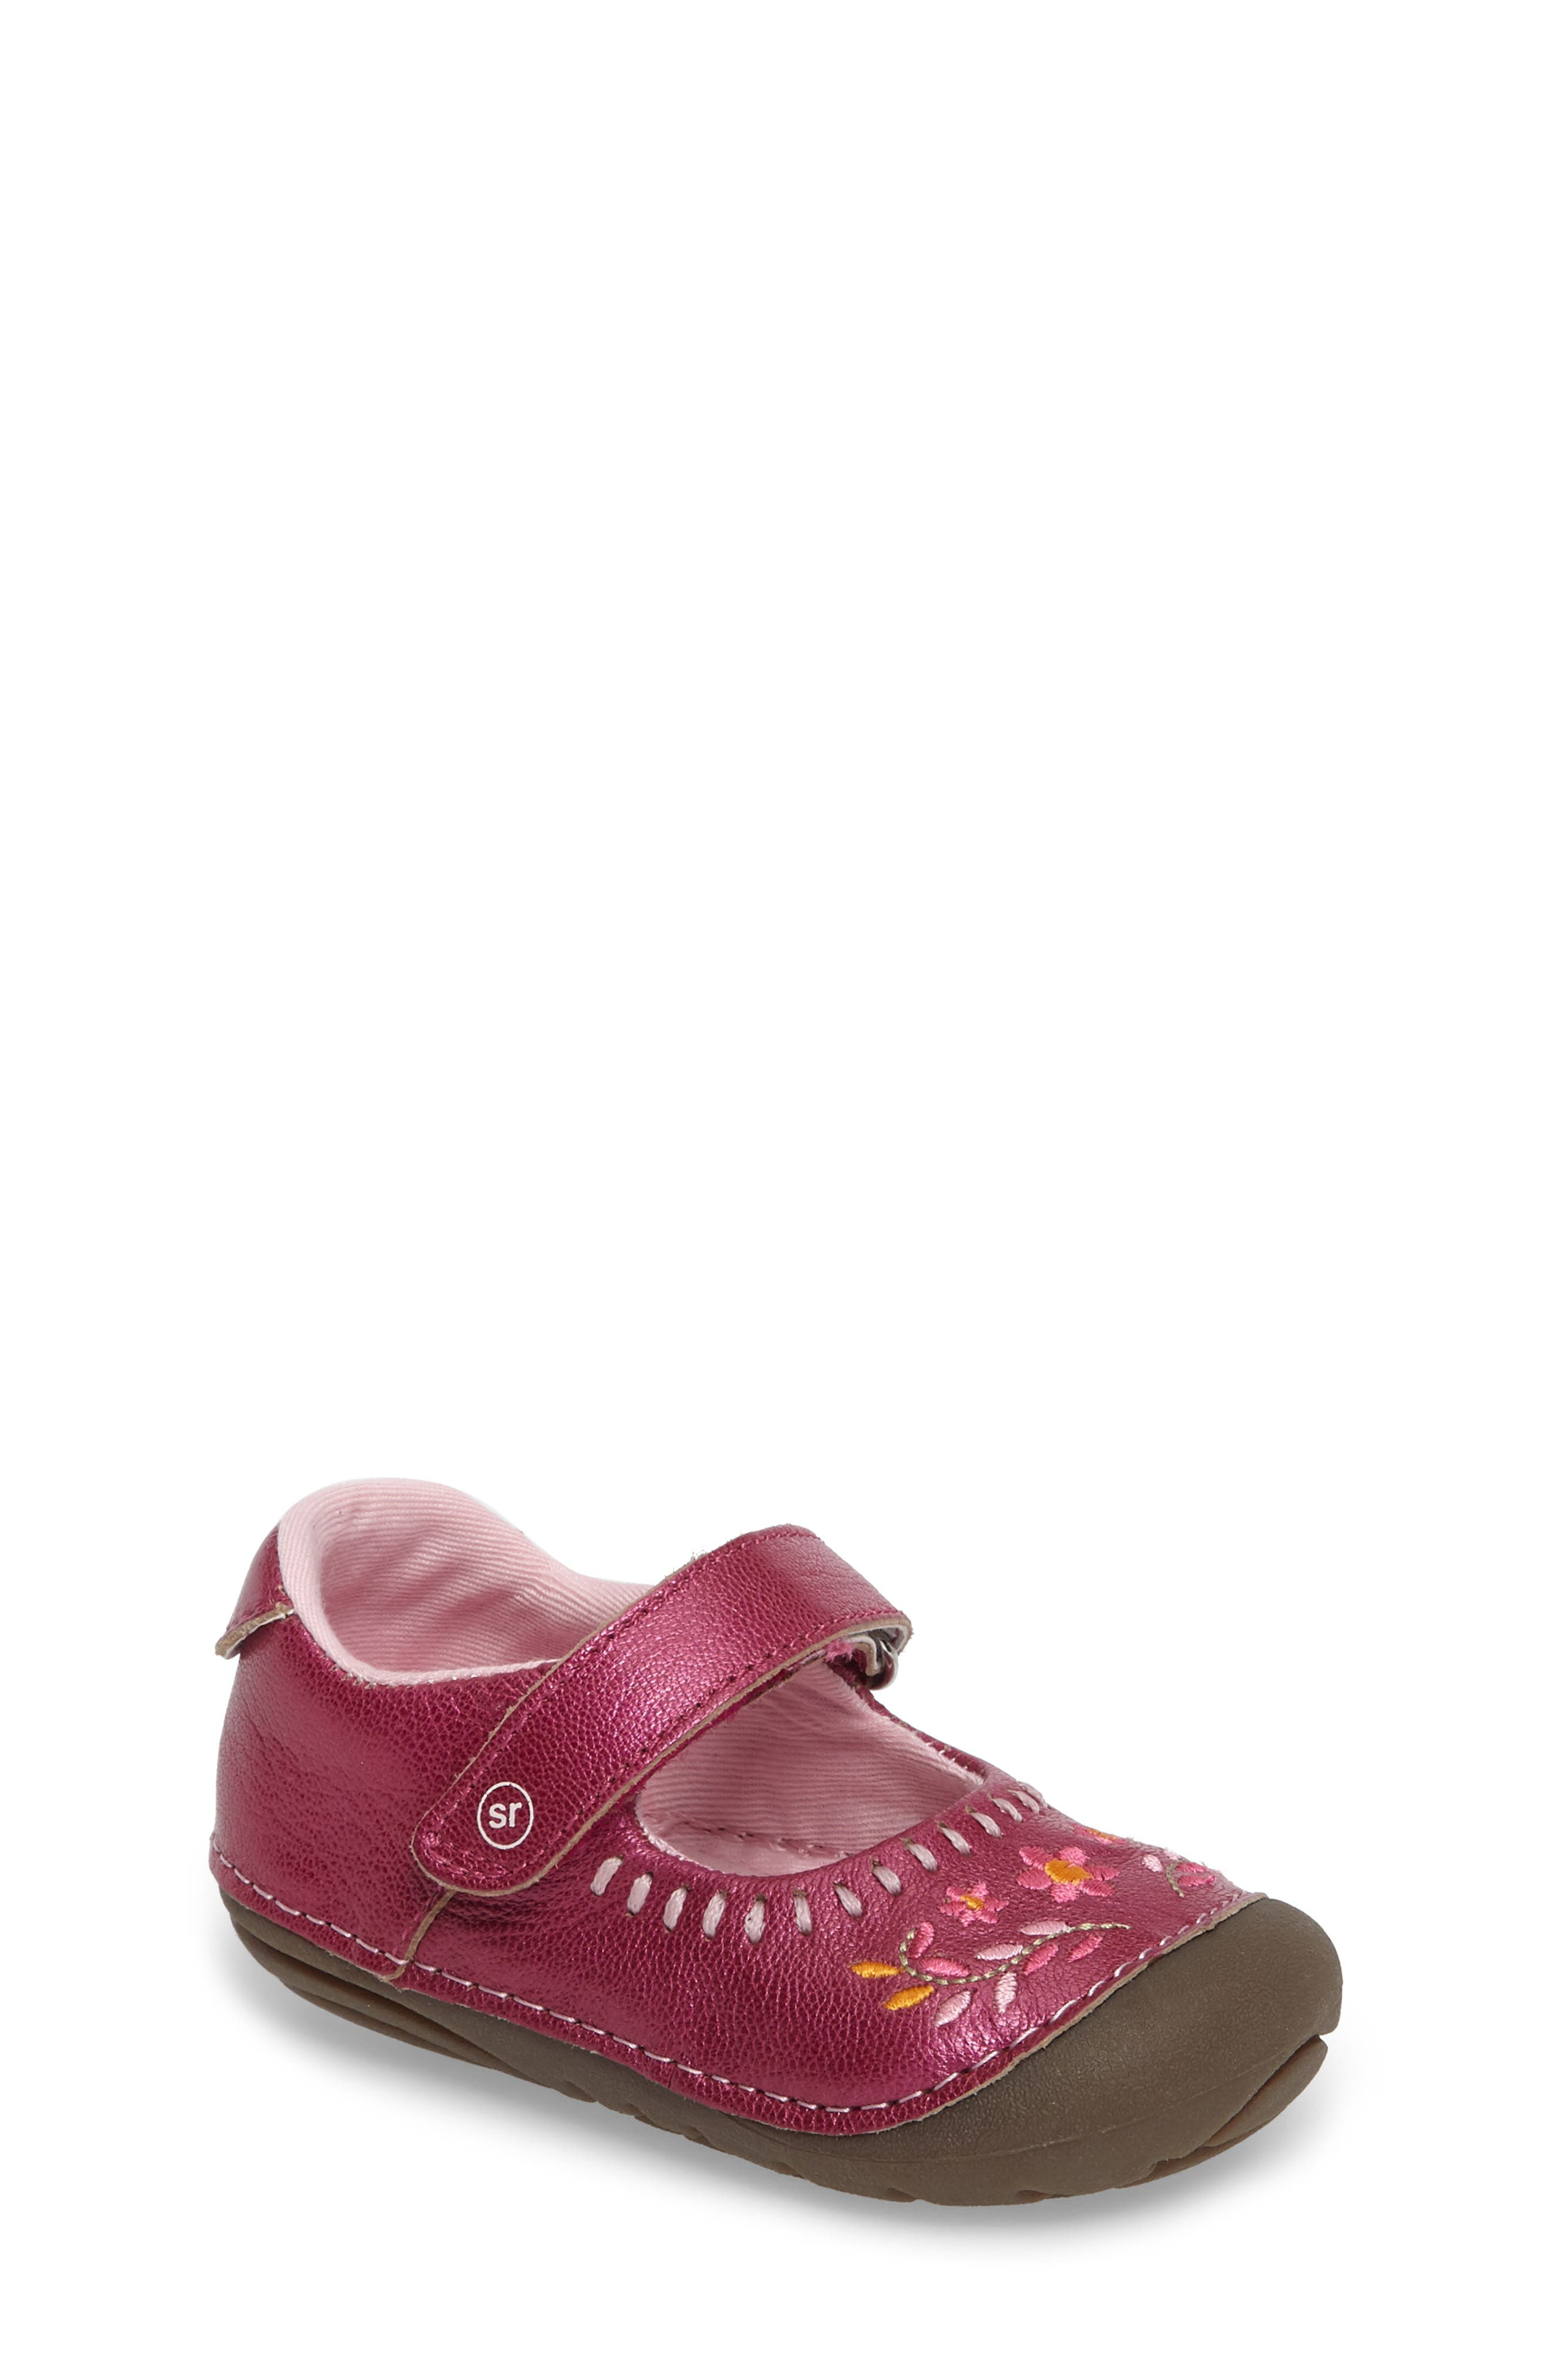 Alternate Image 1 Selected - Stride Rite Atley Flower Embroidered Mary Jane (Baby & Walker)